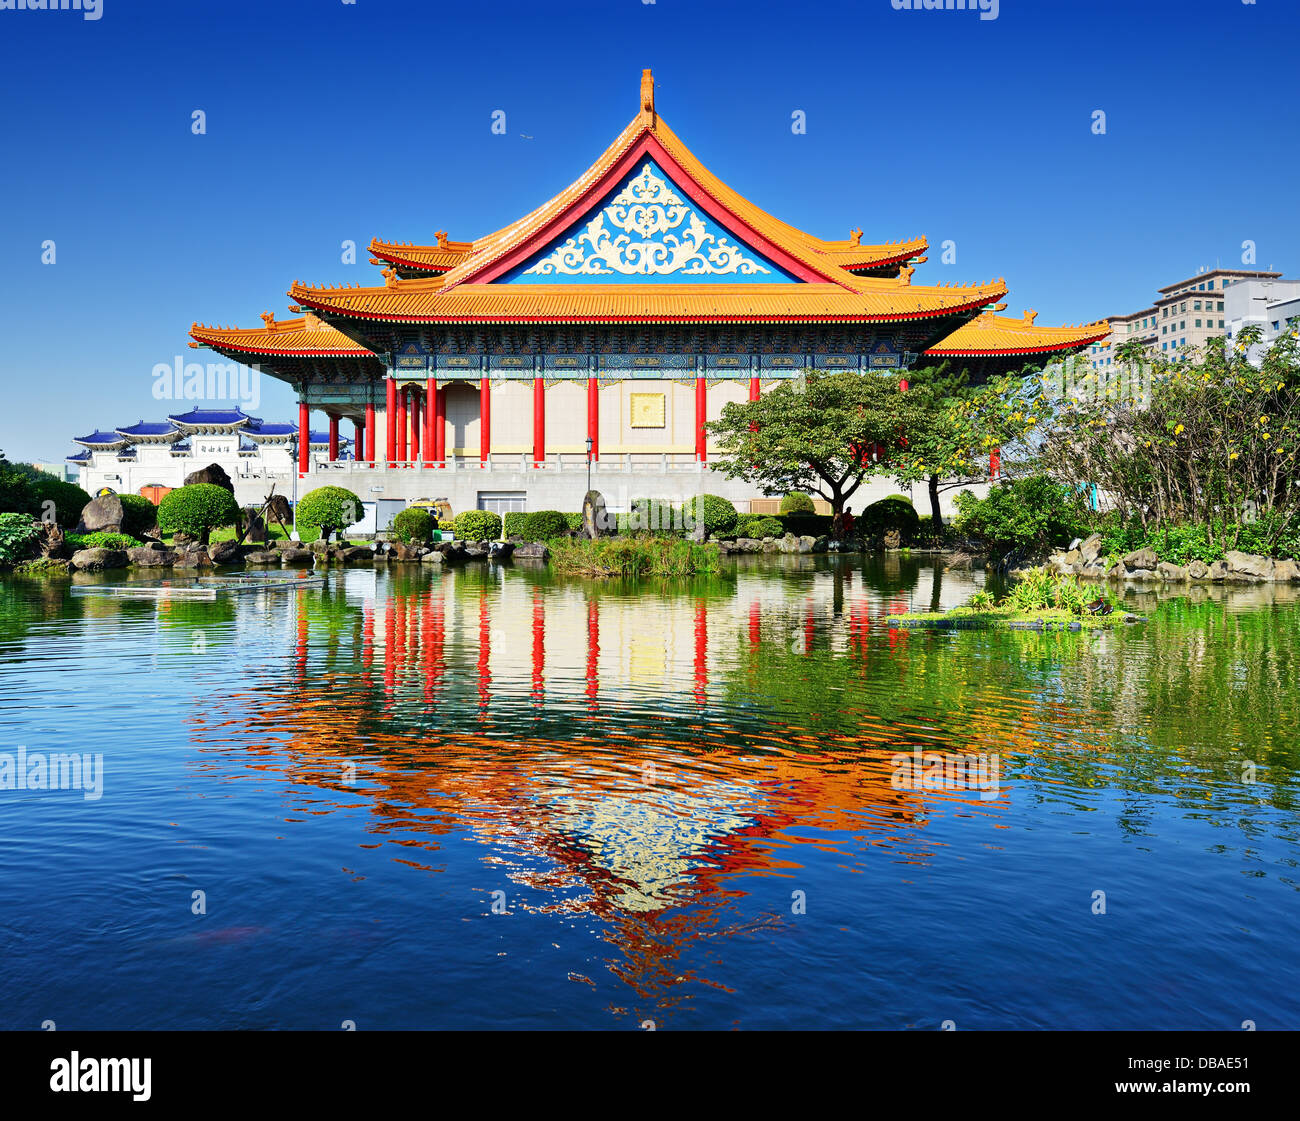 National Concert Hall of Taiwan in Freedom Square, Taipei, Taiwan. Stock Photo